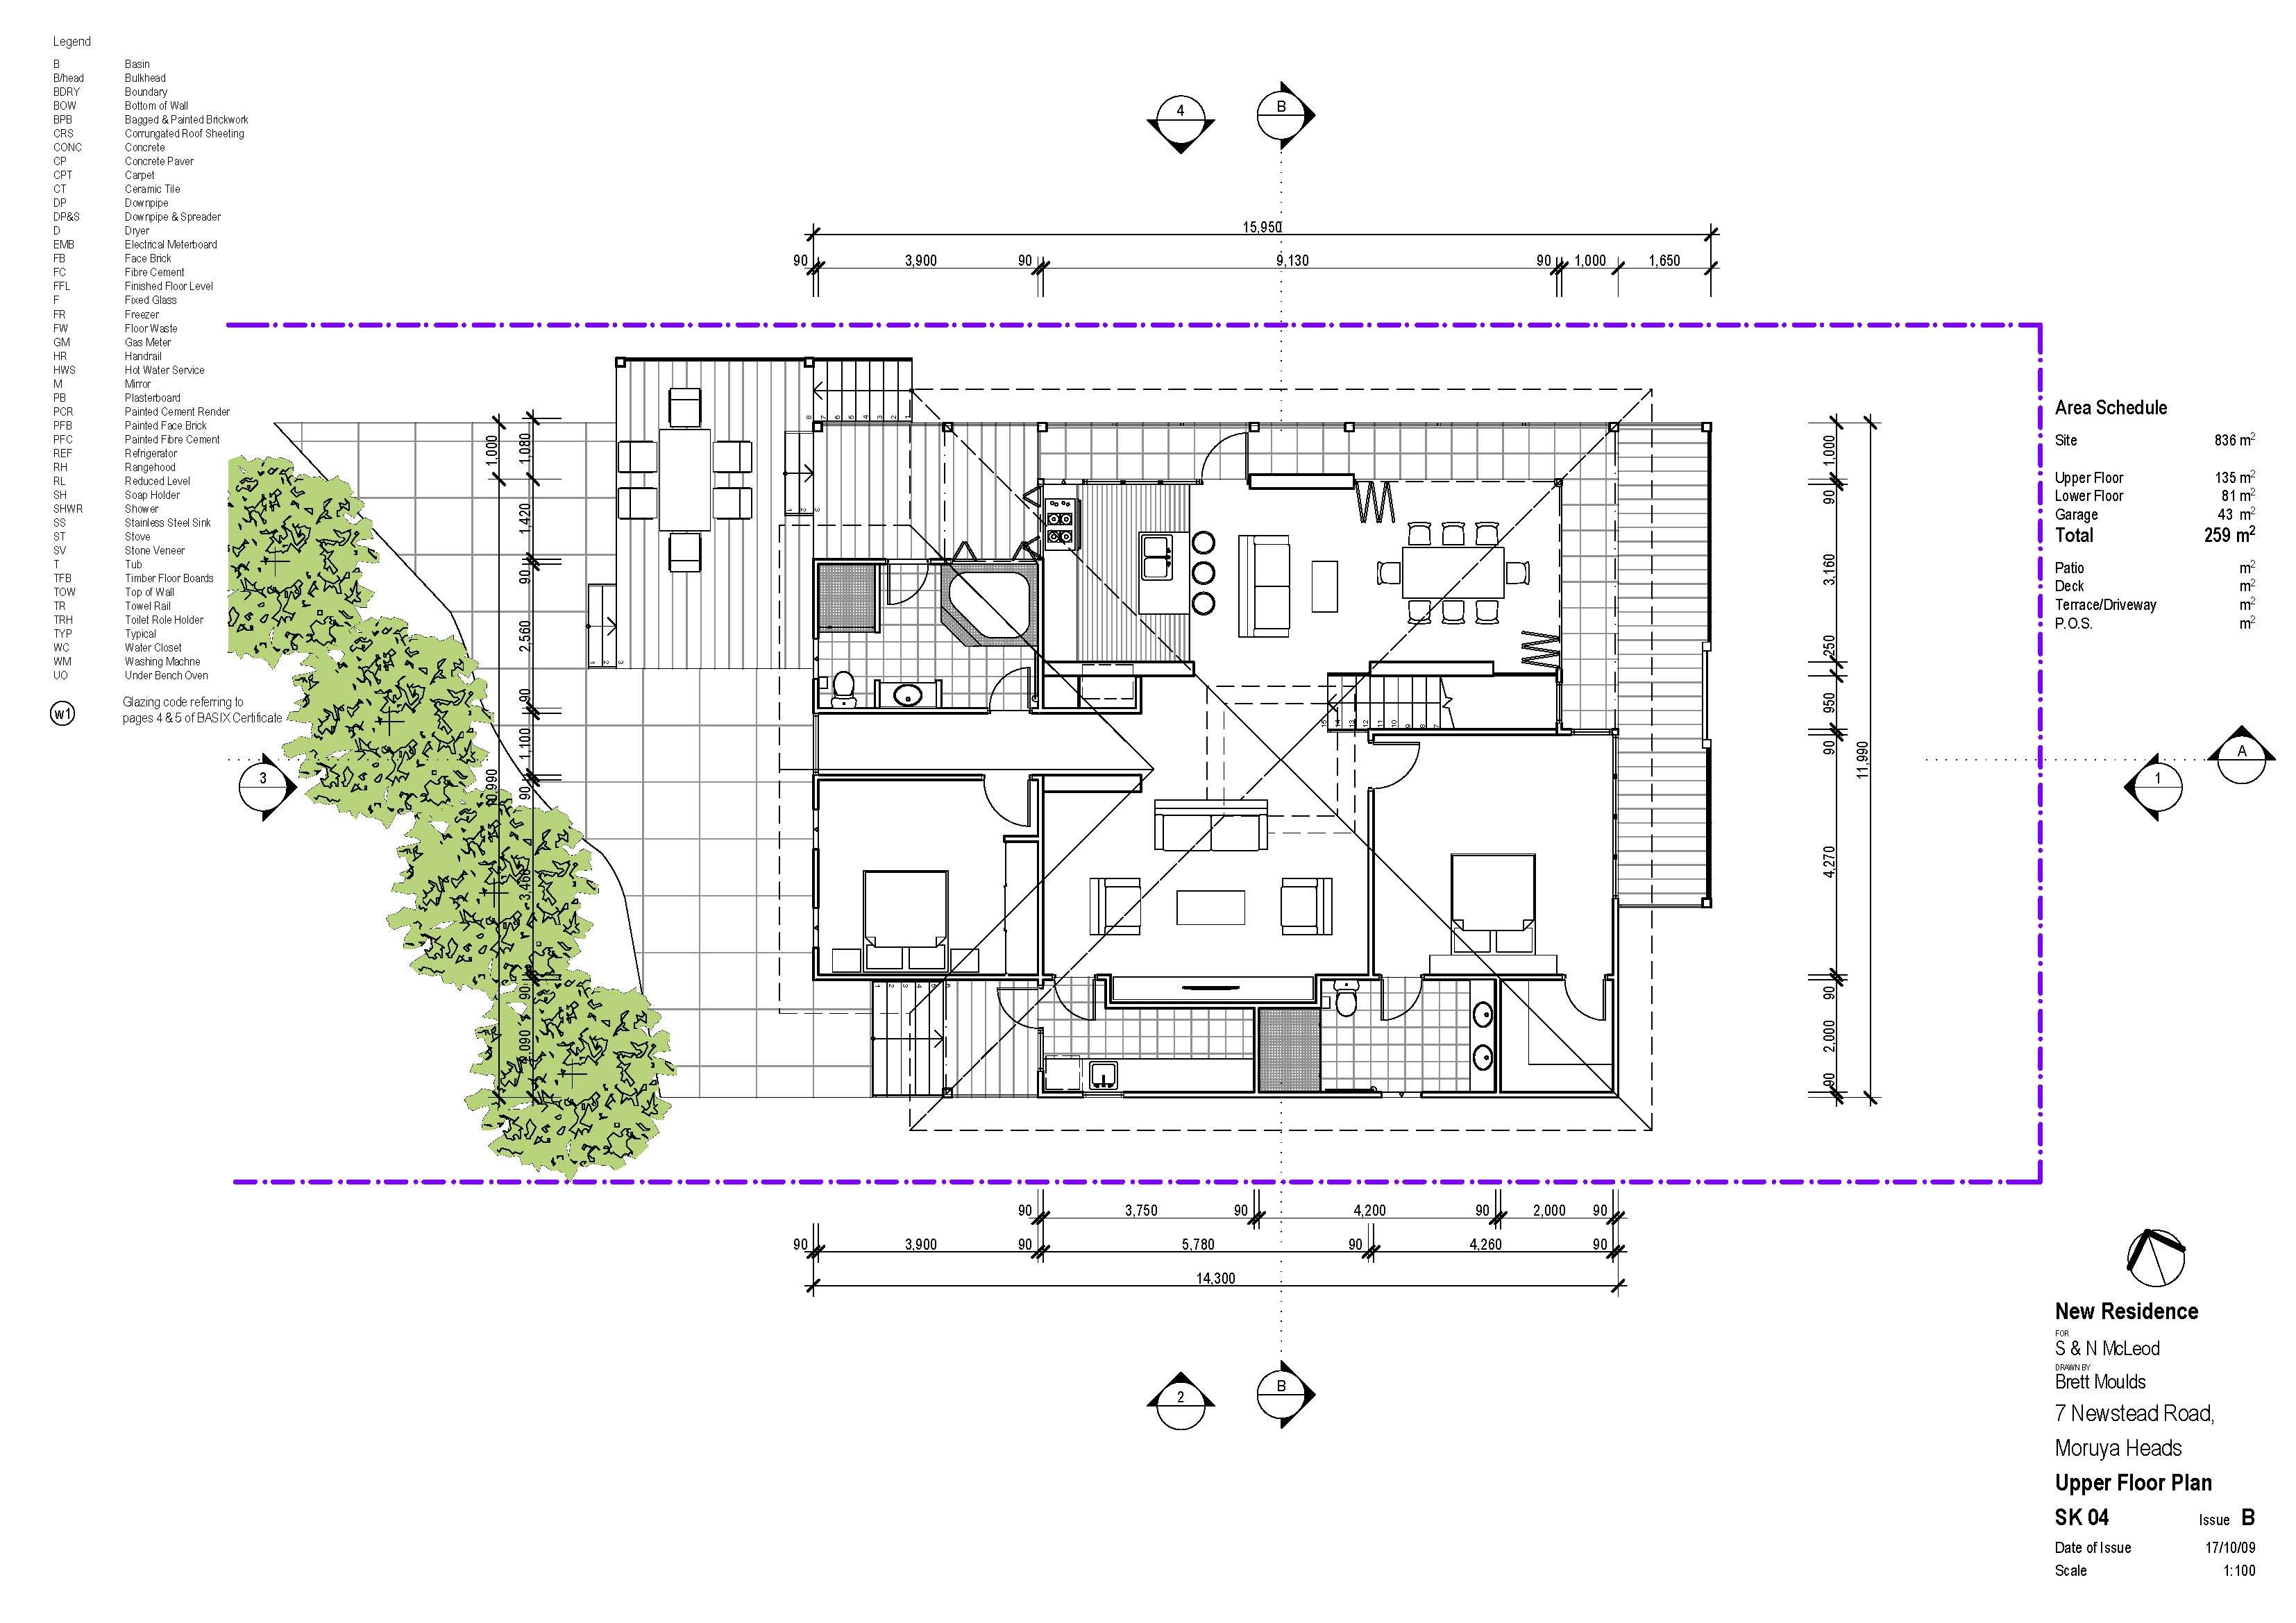 Architectural CAD Drawings  Drawings Autocad   CAD Drawing Services   Drafting CAD Services. Architectural CAD Drawings  Drawings Autocad   CAD Drawing